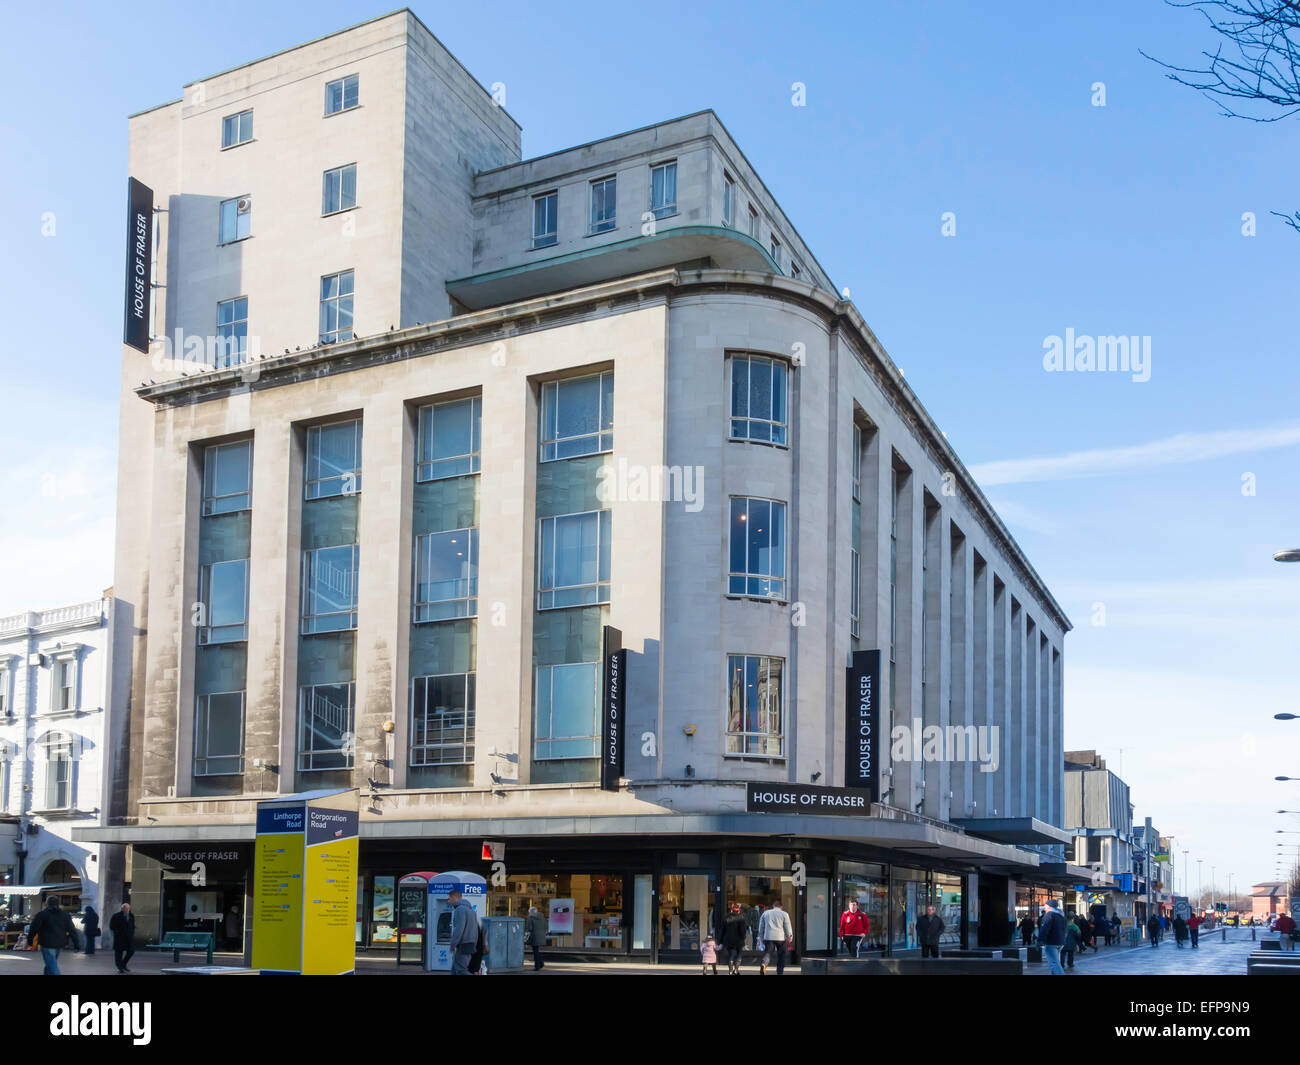 Art deco style architecture -  Binns Building Now House Of Fraser Store Built 1950 S Art Deco Style Architecture In Middlesbrough Cleveland